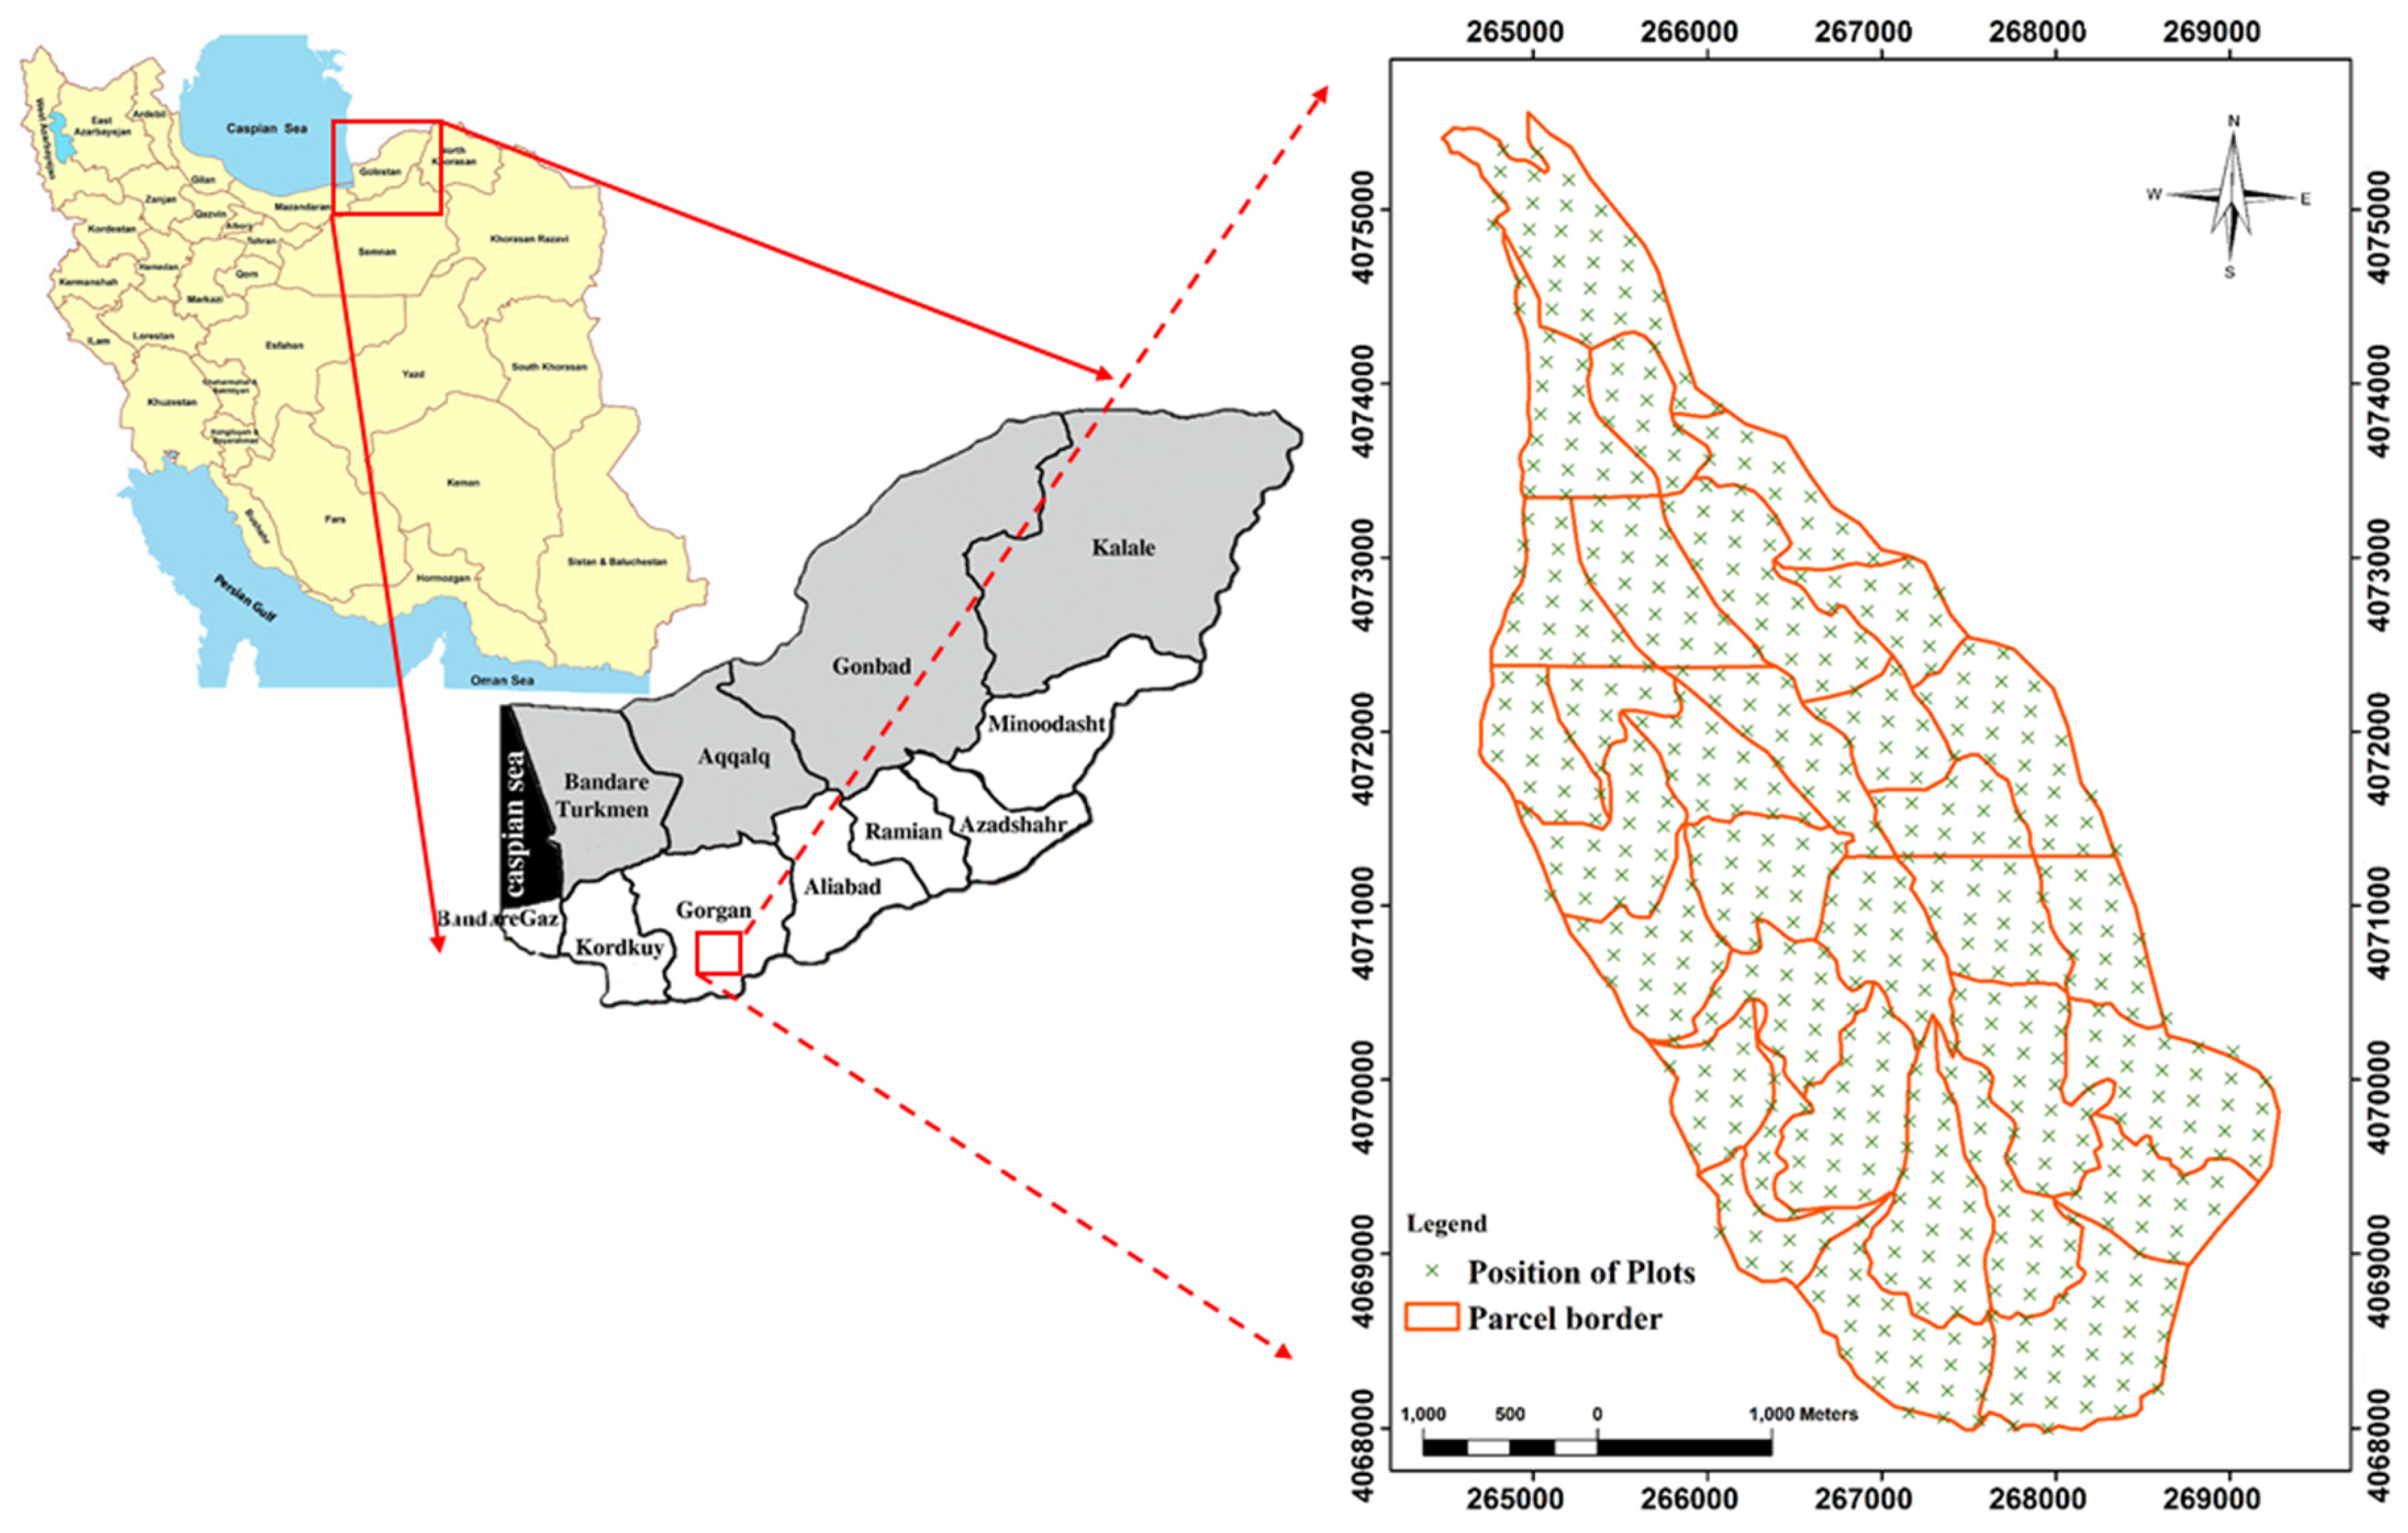 Forests Free FullText Prediction Of Dominant Forest Tree - Map 1213 us 40 west cambridge city in